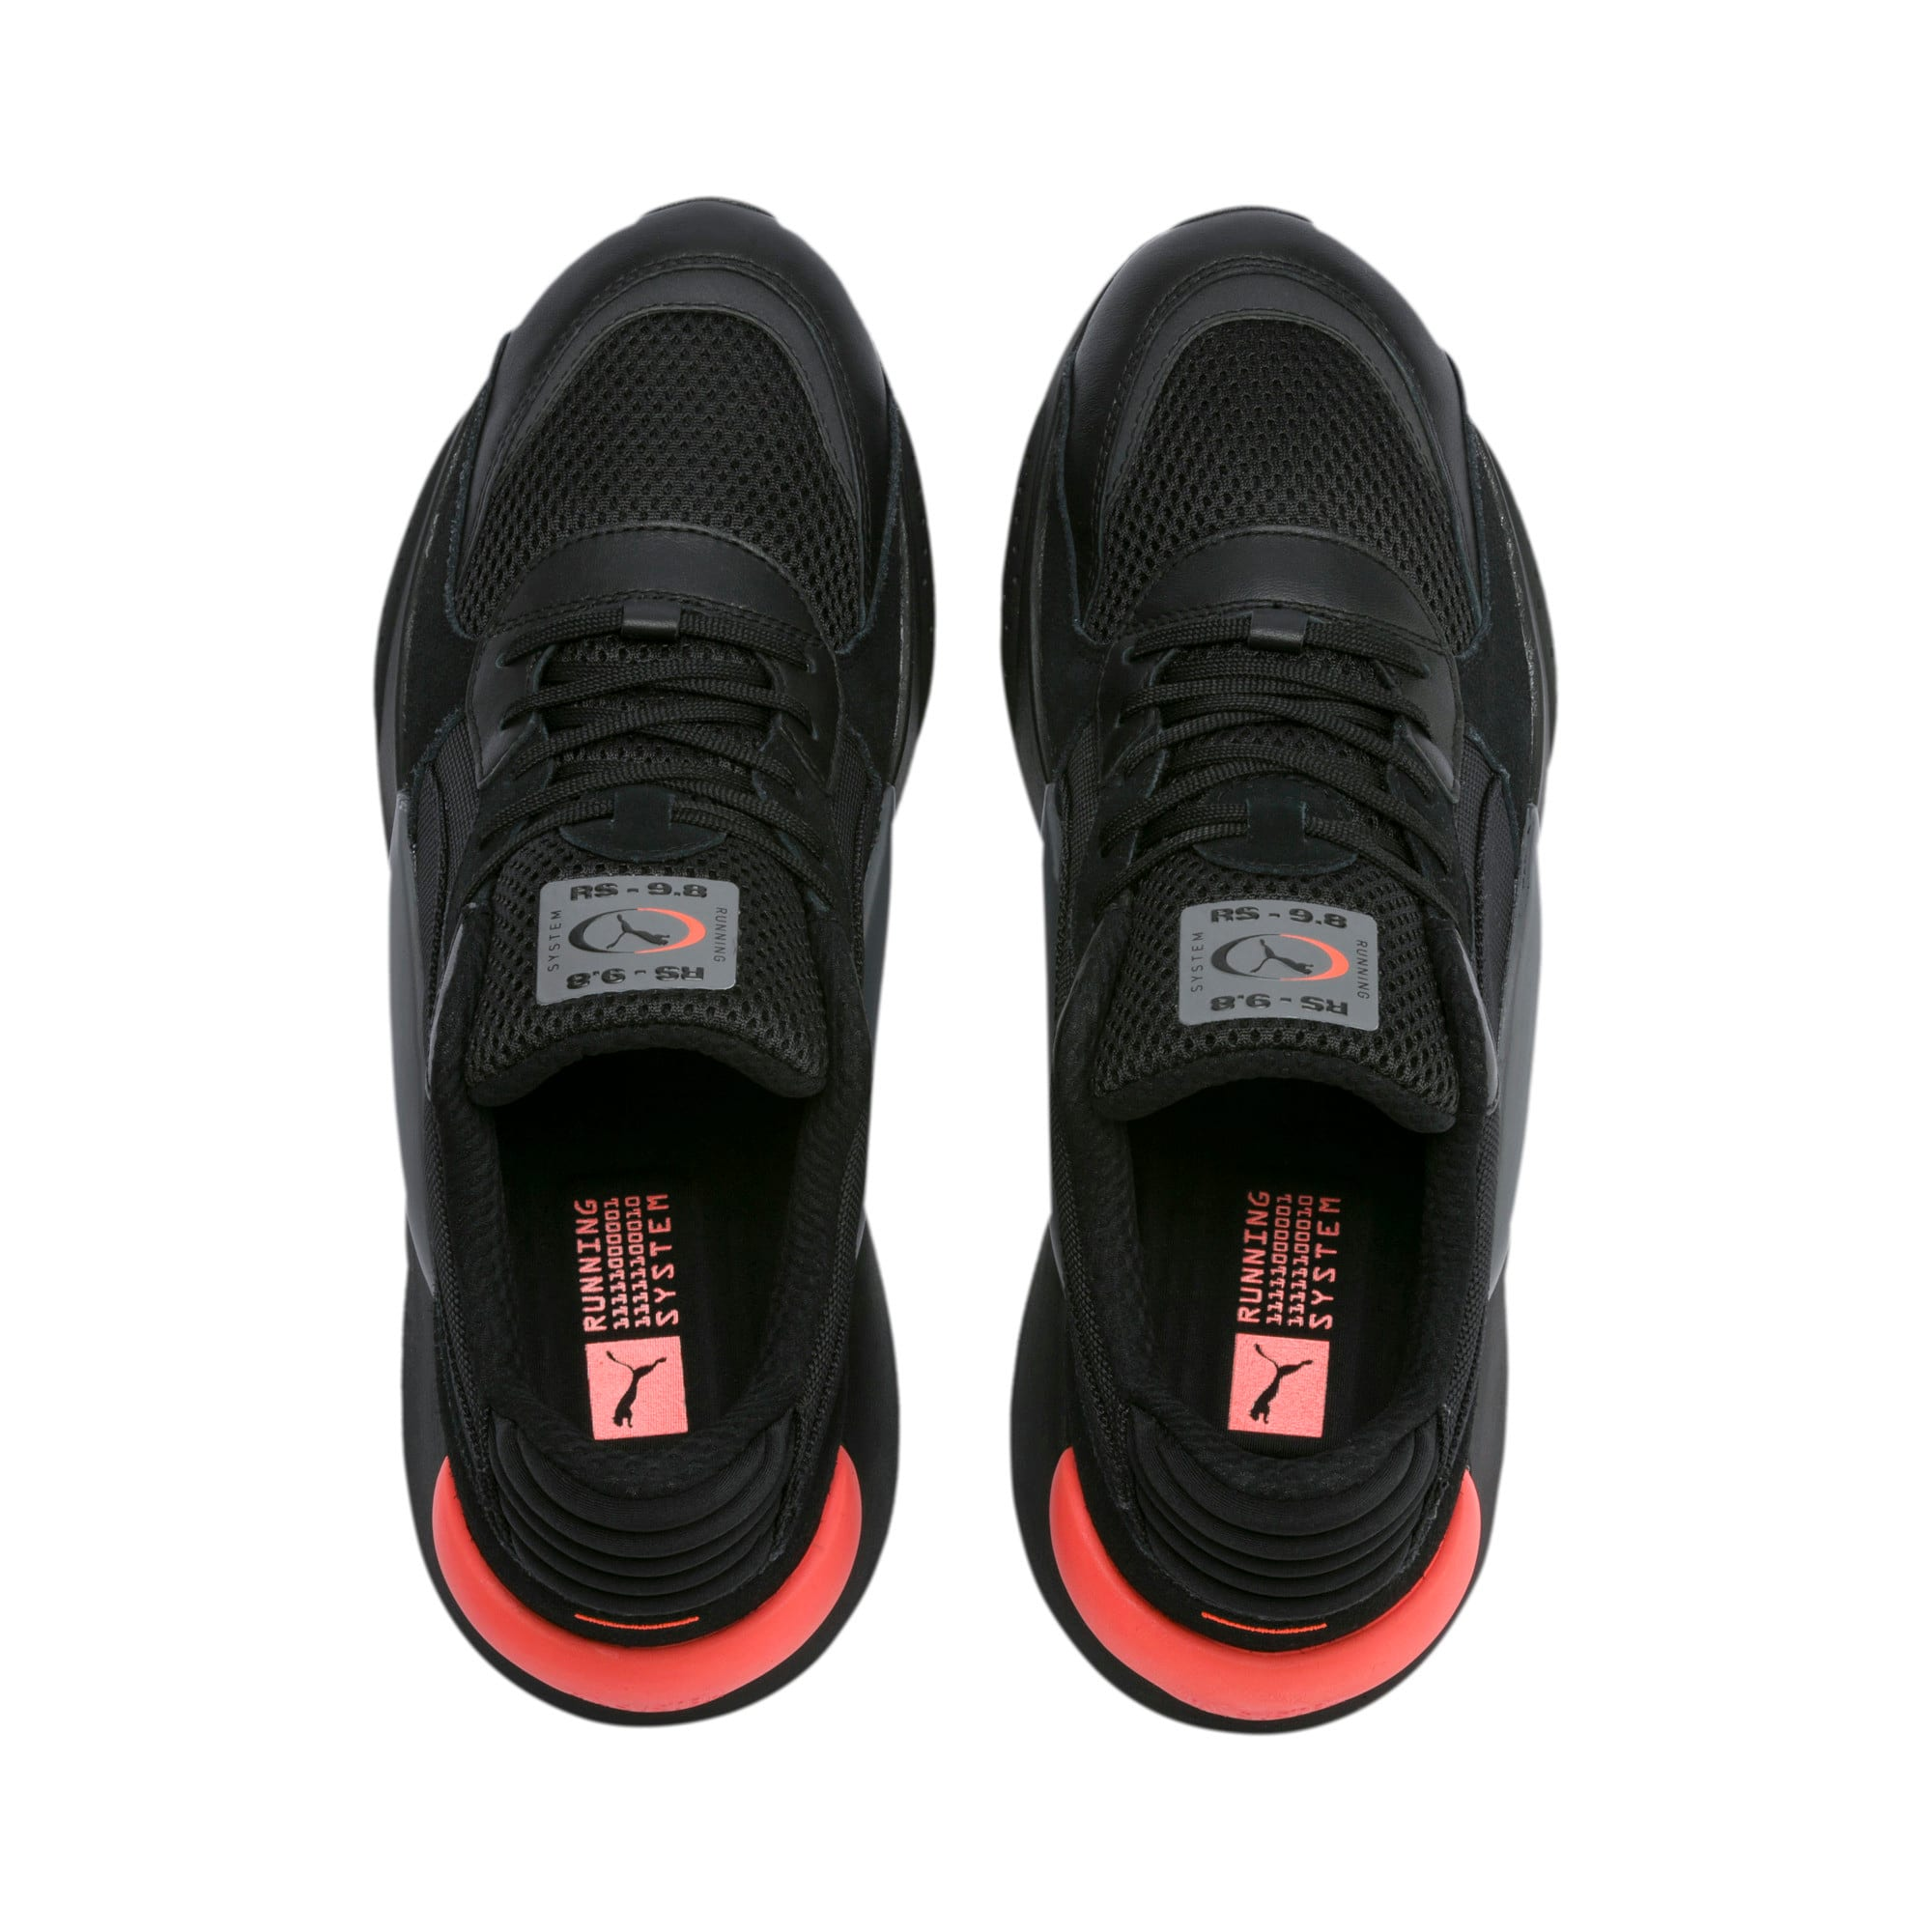 Thumbnail 6 of RS 9.8 Cosmic Trainers, Puma Black, medium